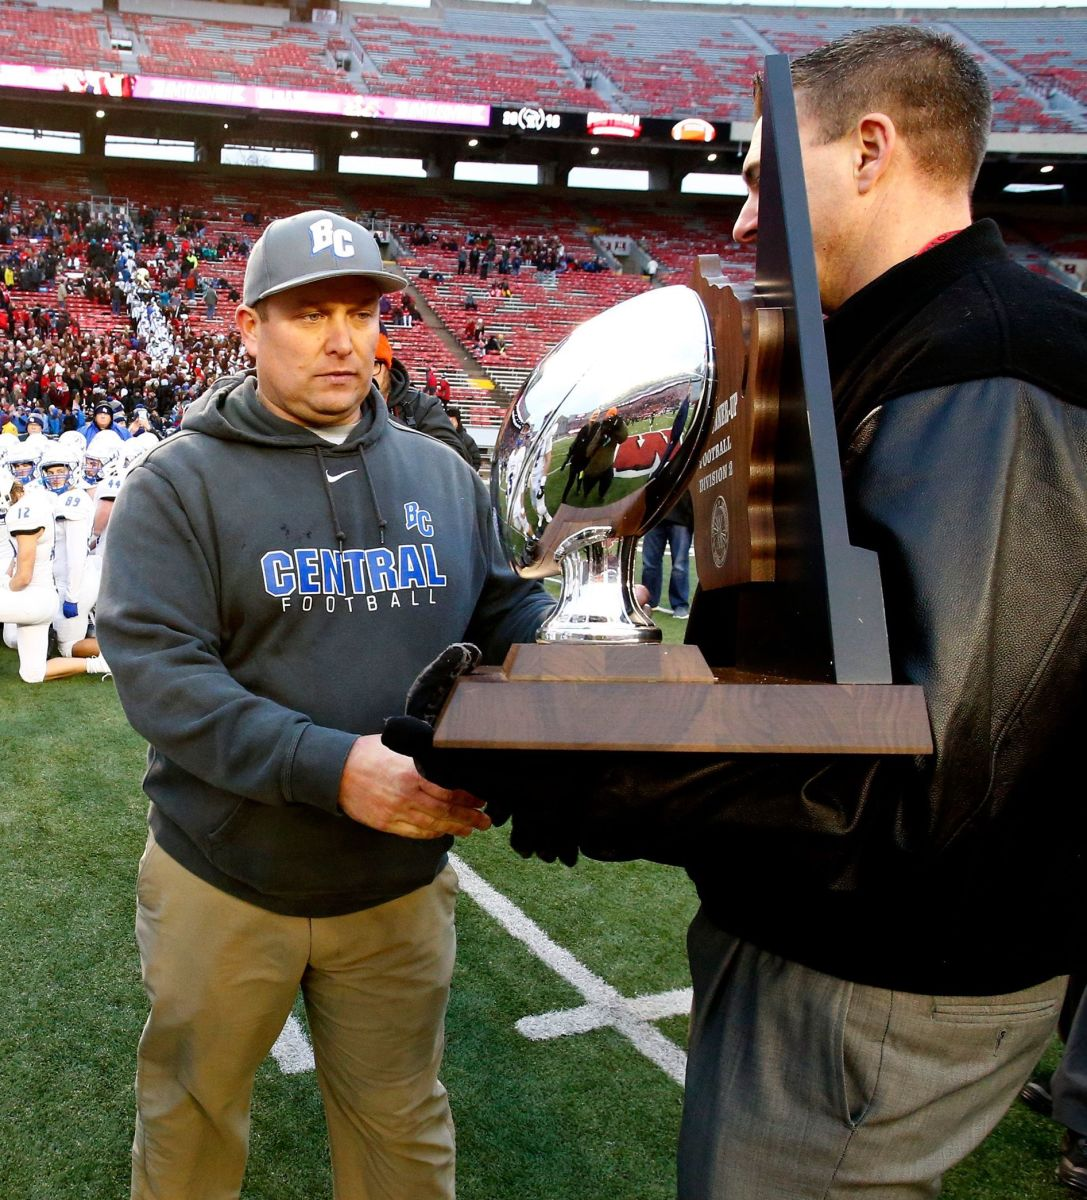 Brookfield (WIs.) Central High School football coach Jed Kennedy accepts the 2018 WIAA Division 2 runner-up trophy following the team's 51-14 loss to Homestead in Madison on Nov. 16.